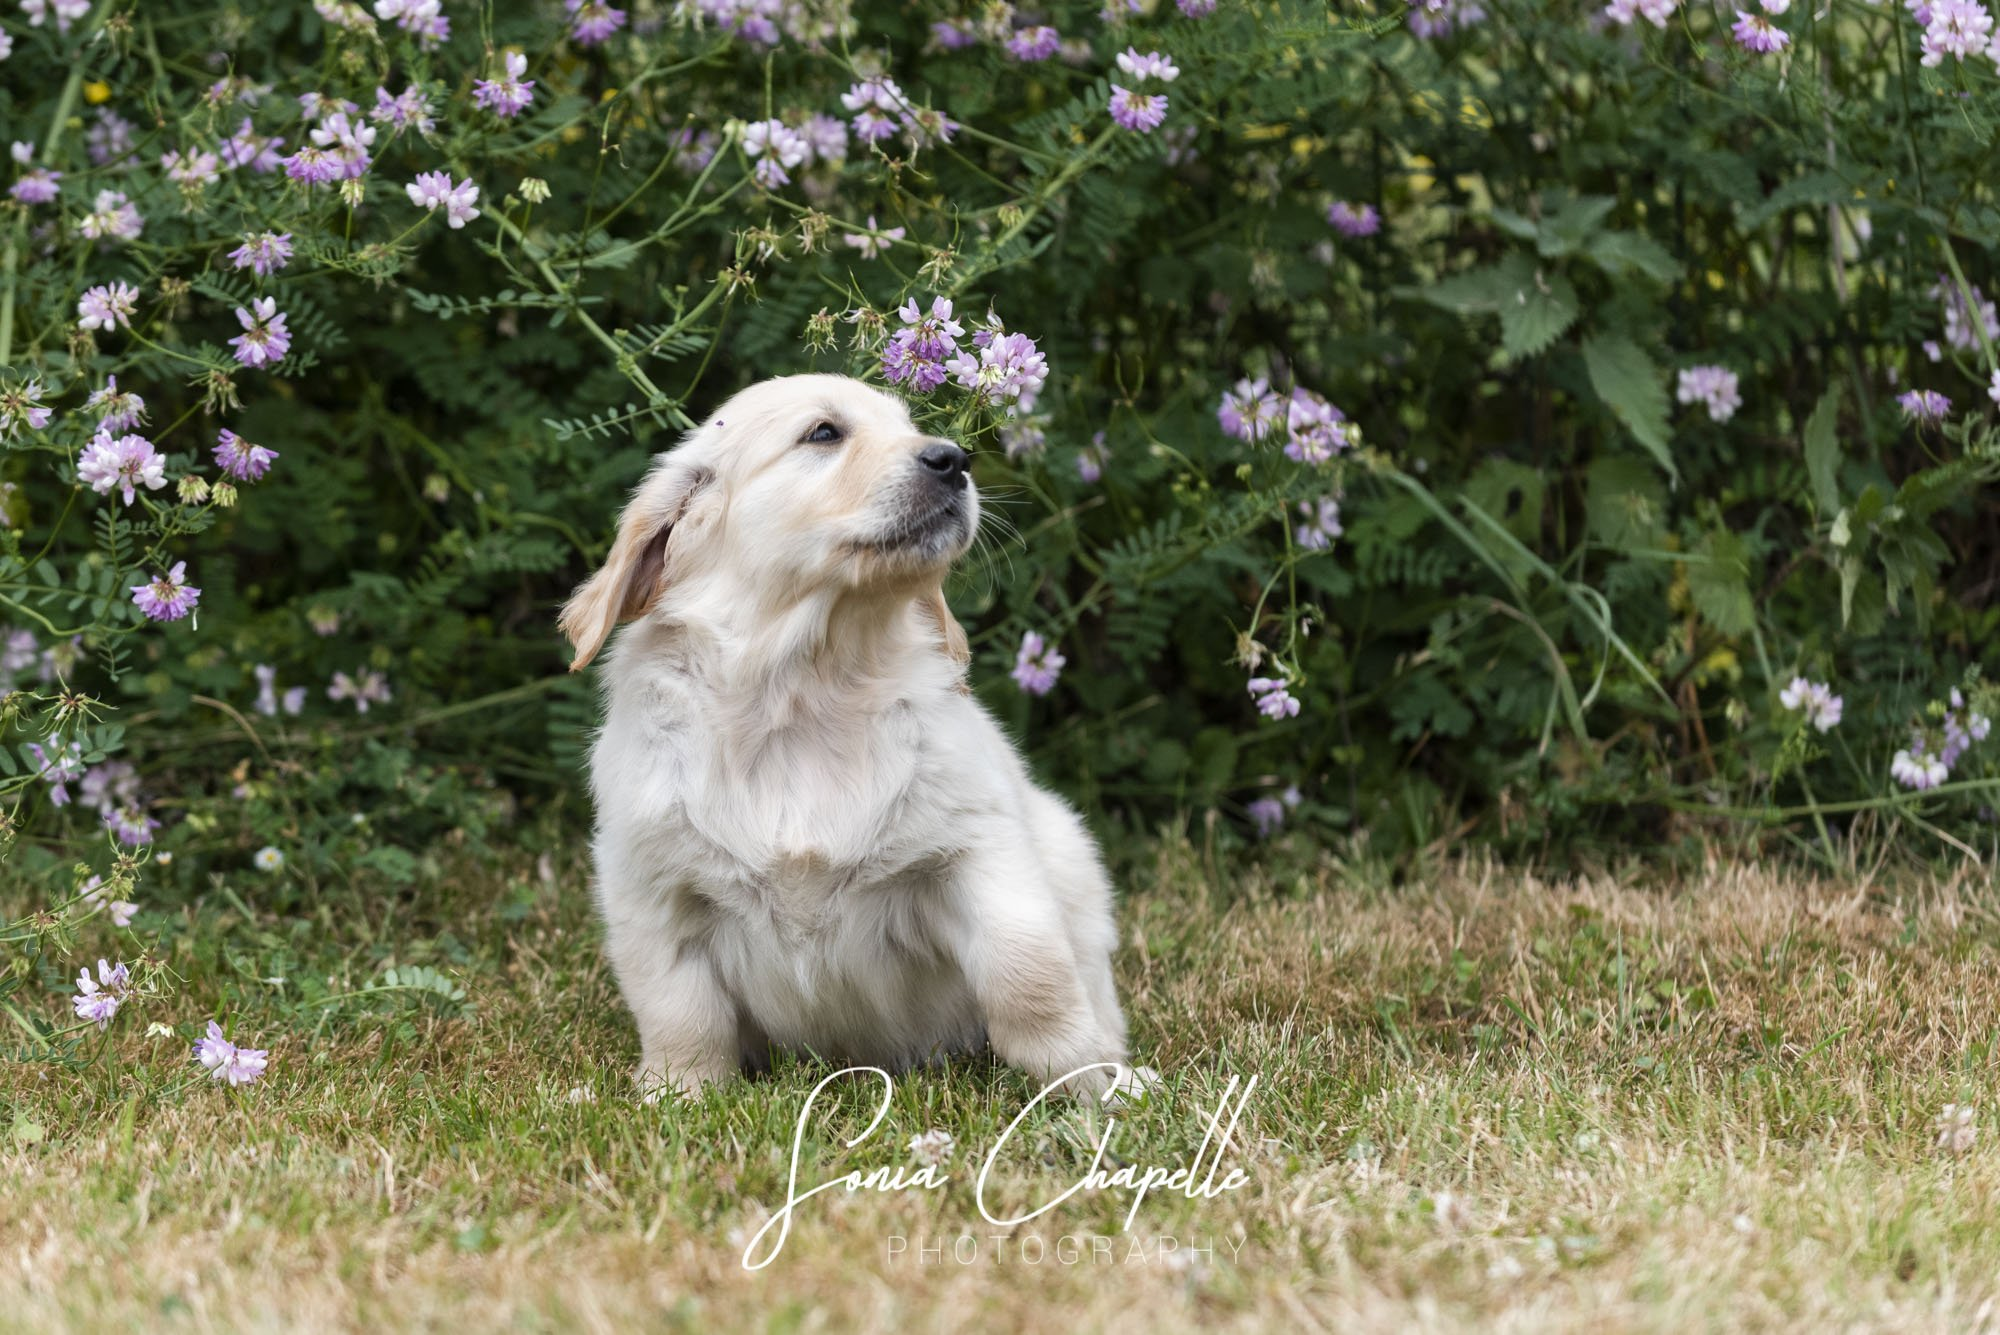 Golden Retriever - Sora for os'mose (kama) the Field of Angels